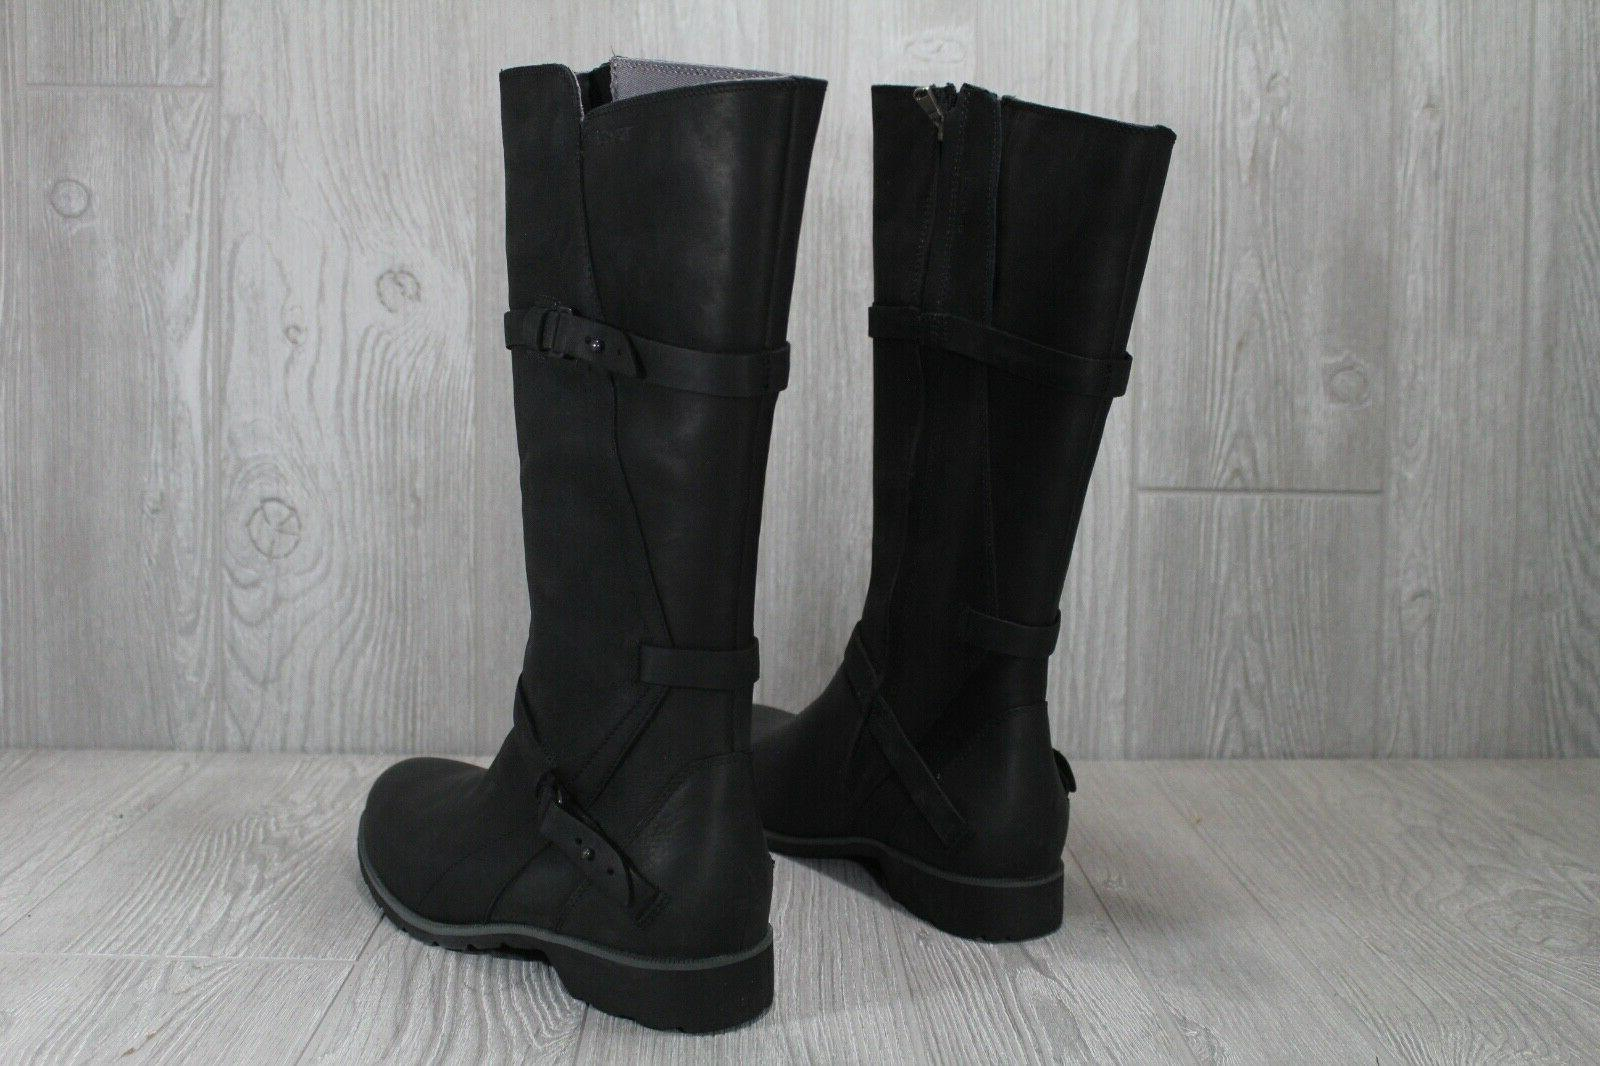 44 Teva La Vina Leather Riding Boots Waterproof 8.5